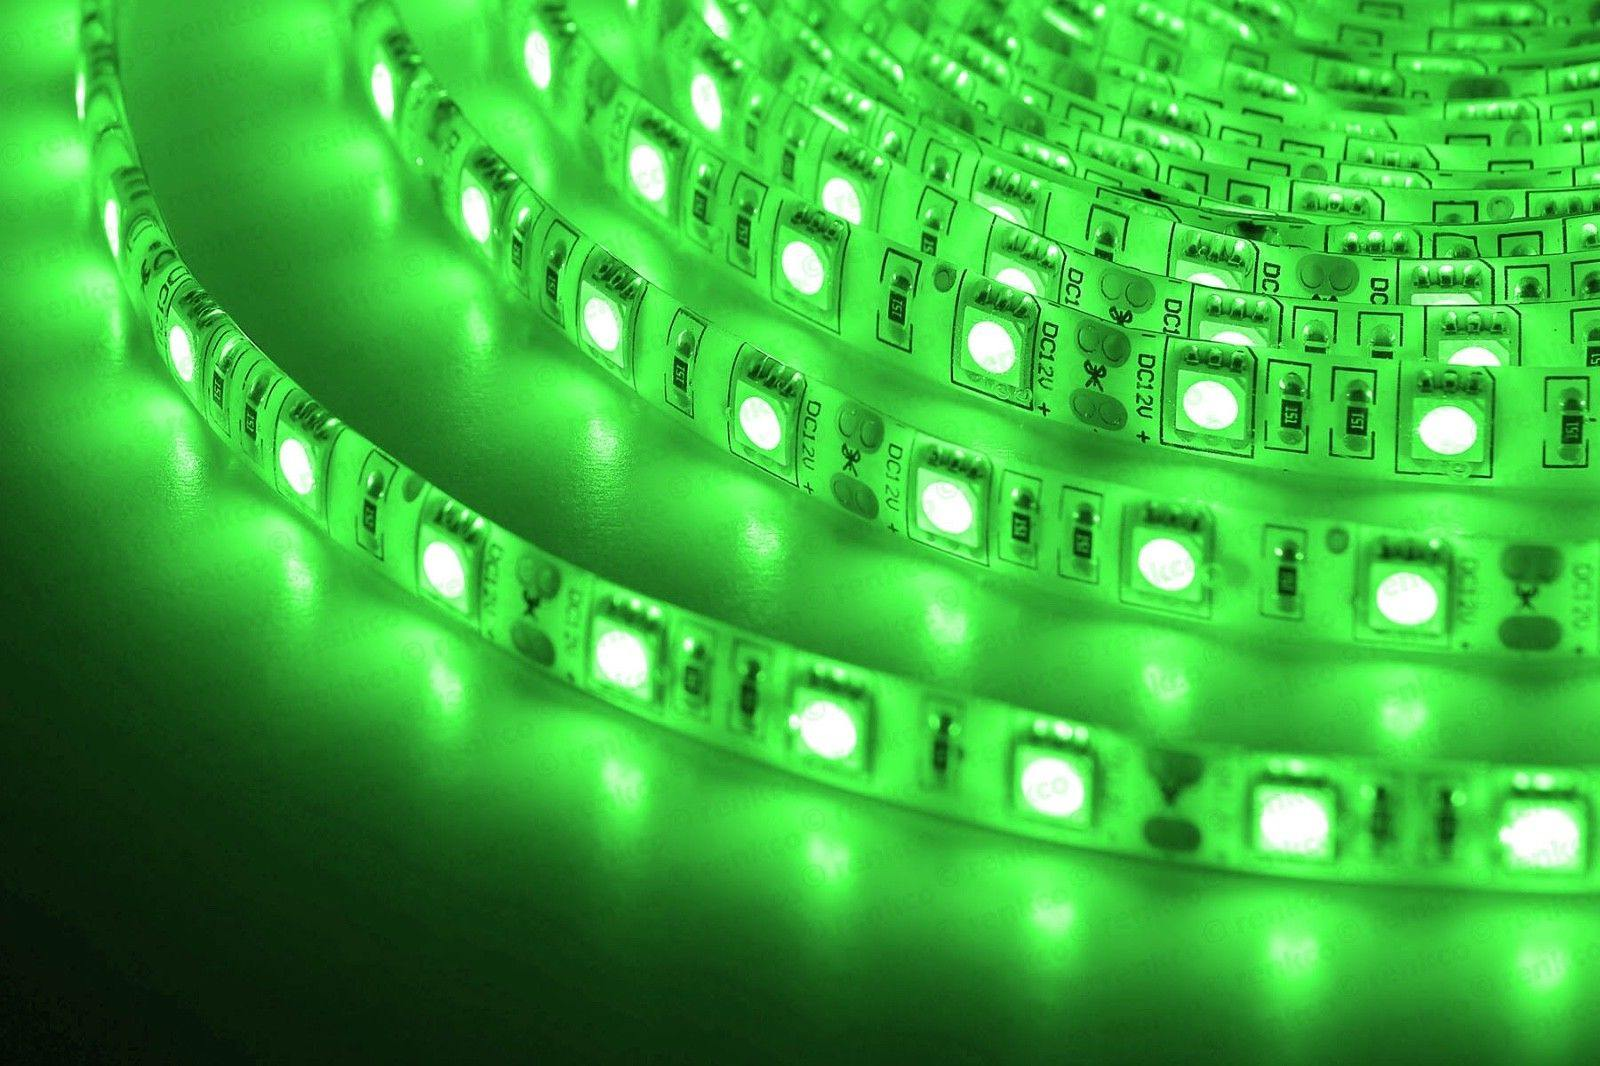 Green 5m flexible bright led strip lights 12v waterproof 5050 smd green 5m flexible bright led strip lights 12v waterproof 5050 smd 300 leds aloadofball Image collections